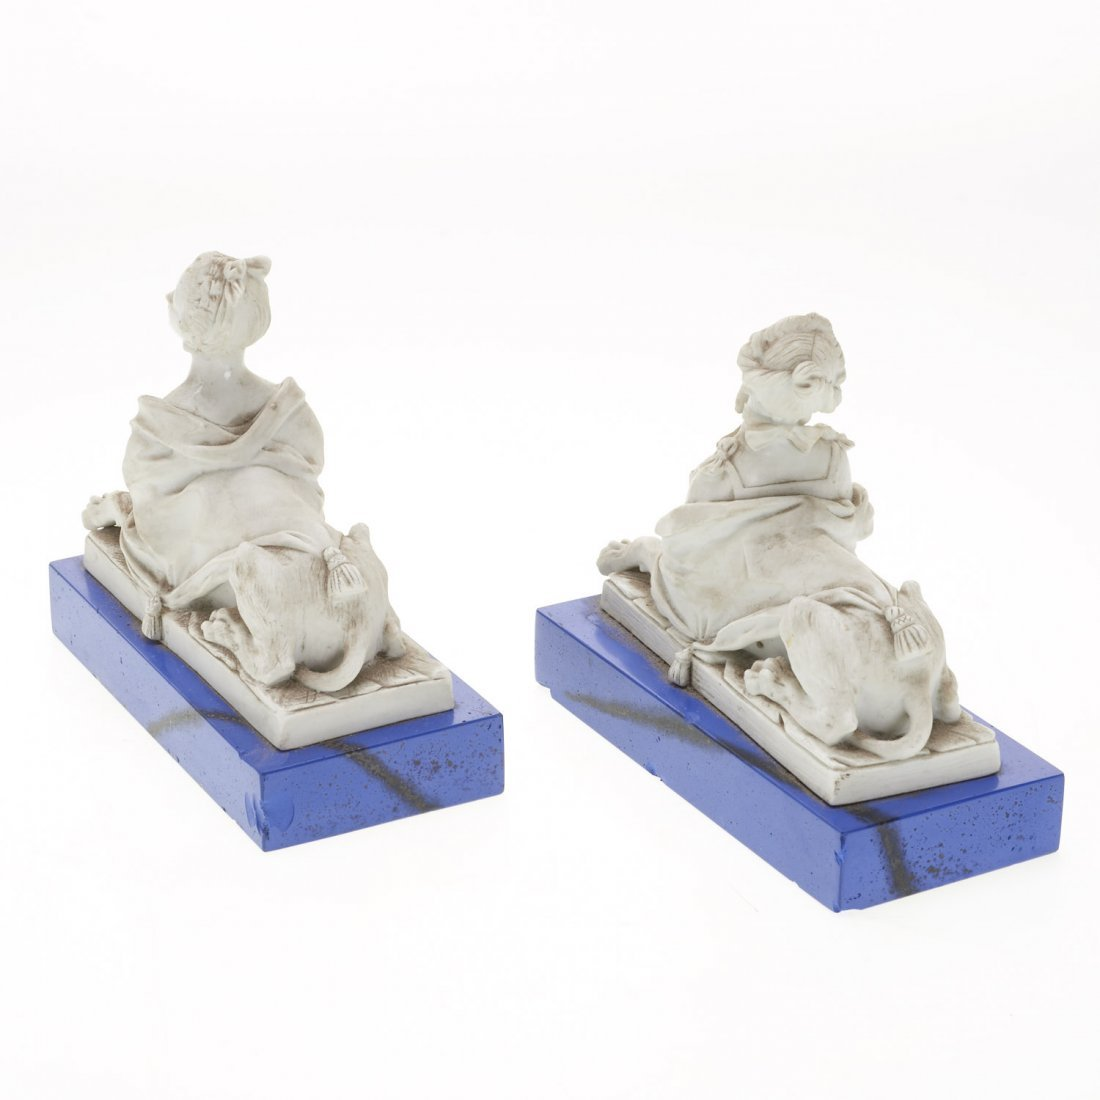 French white porcelain animorphic book ends - 4